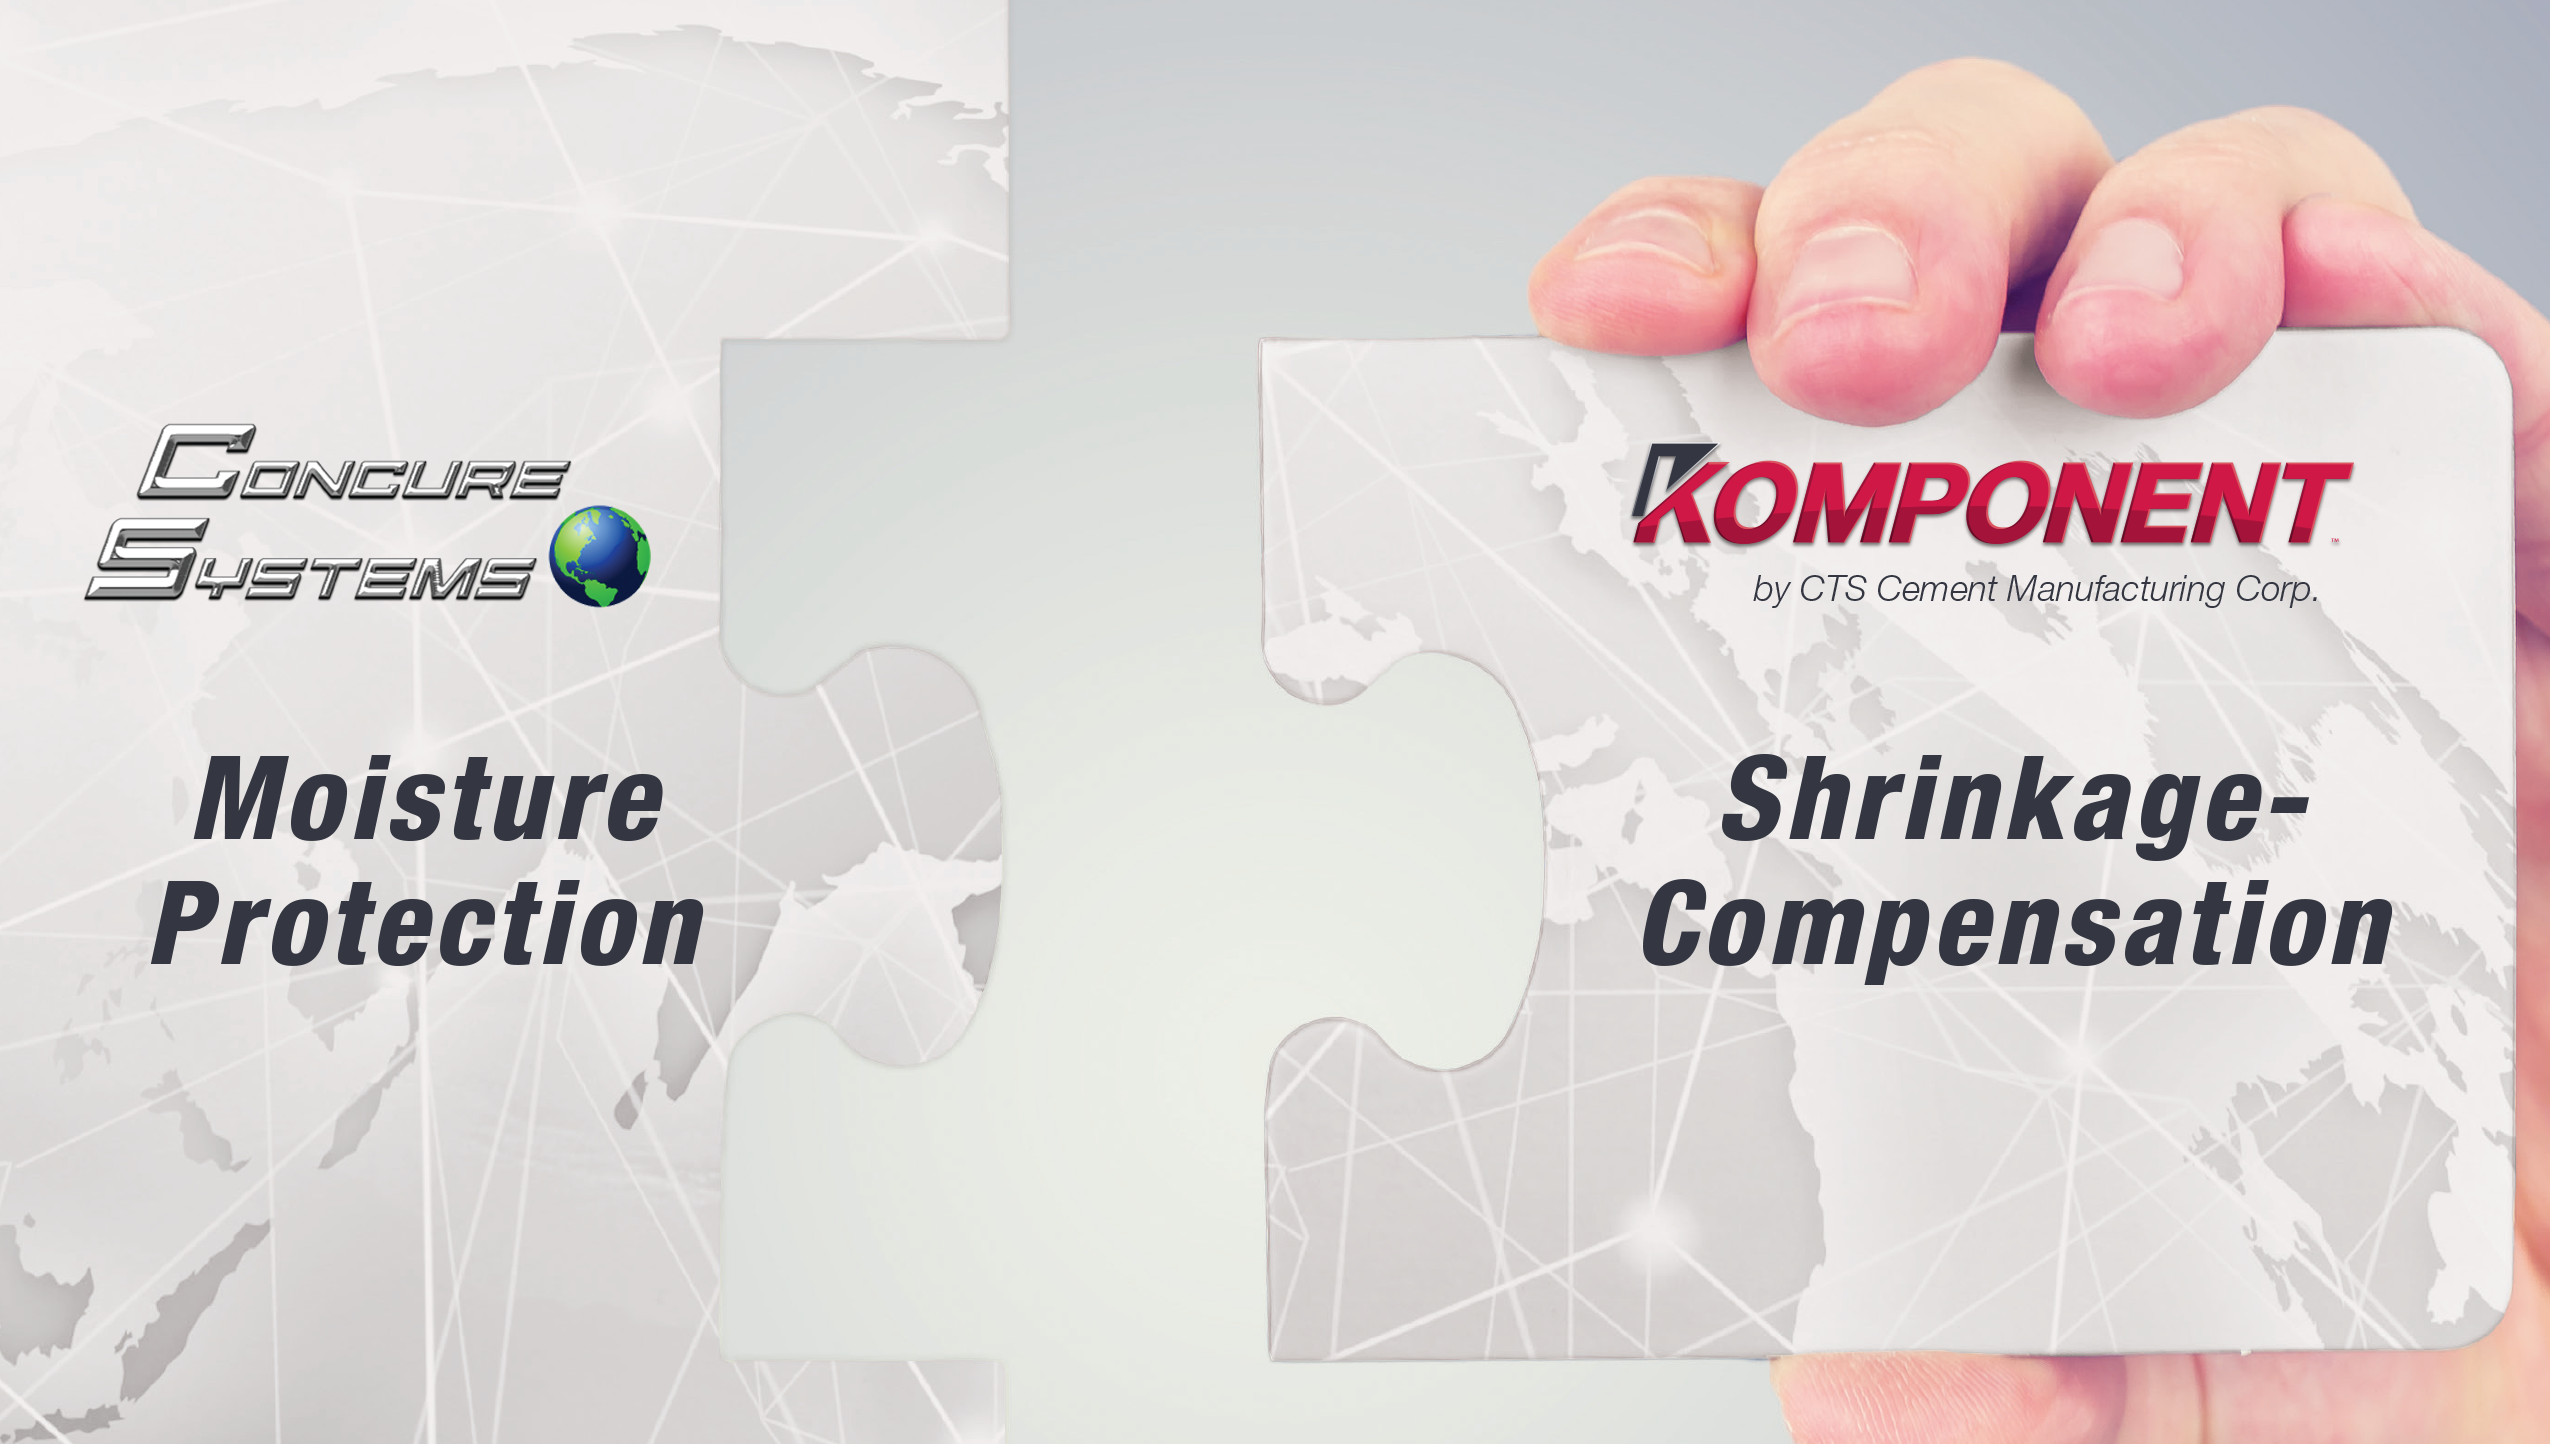 Concure Systems & Komponent Partnership